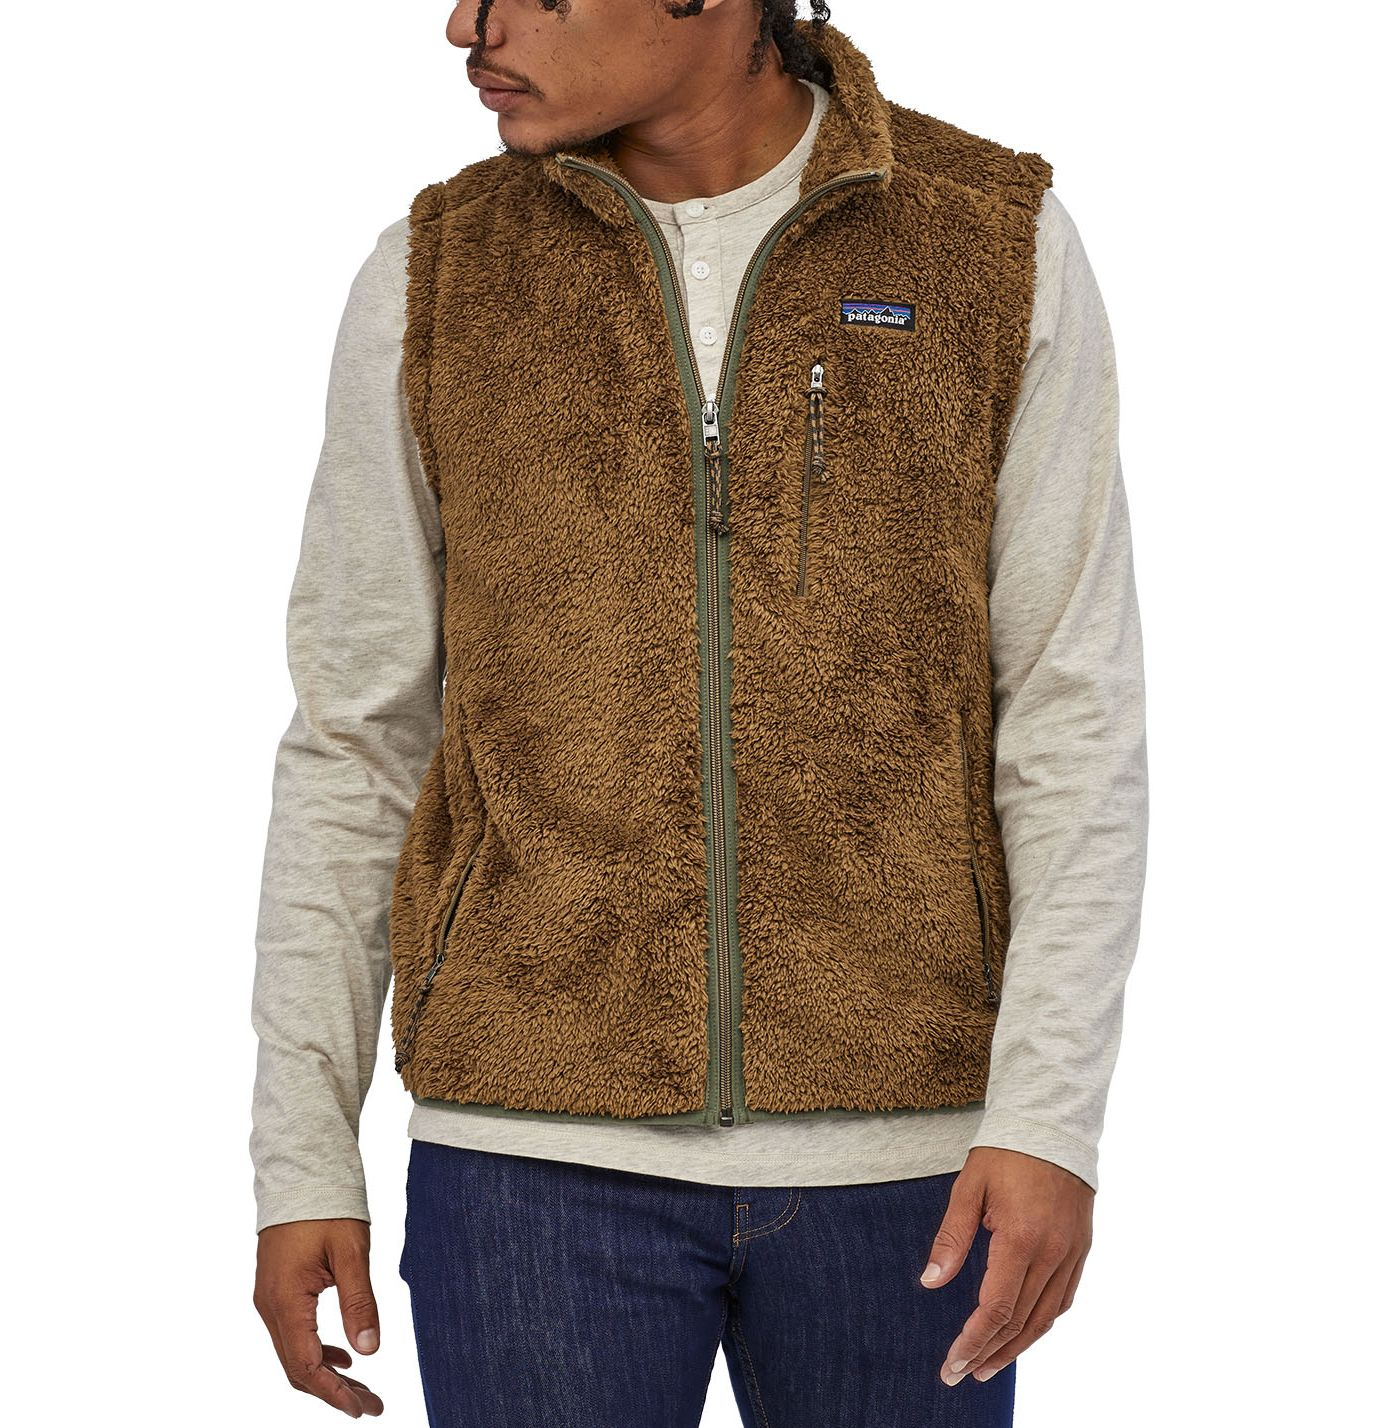 Patagonia Men's Los Gatos Vest